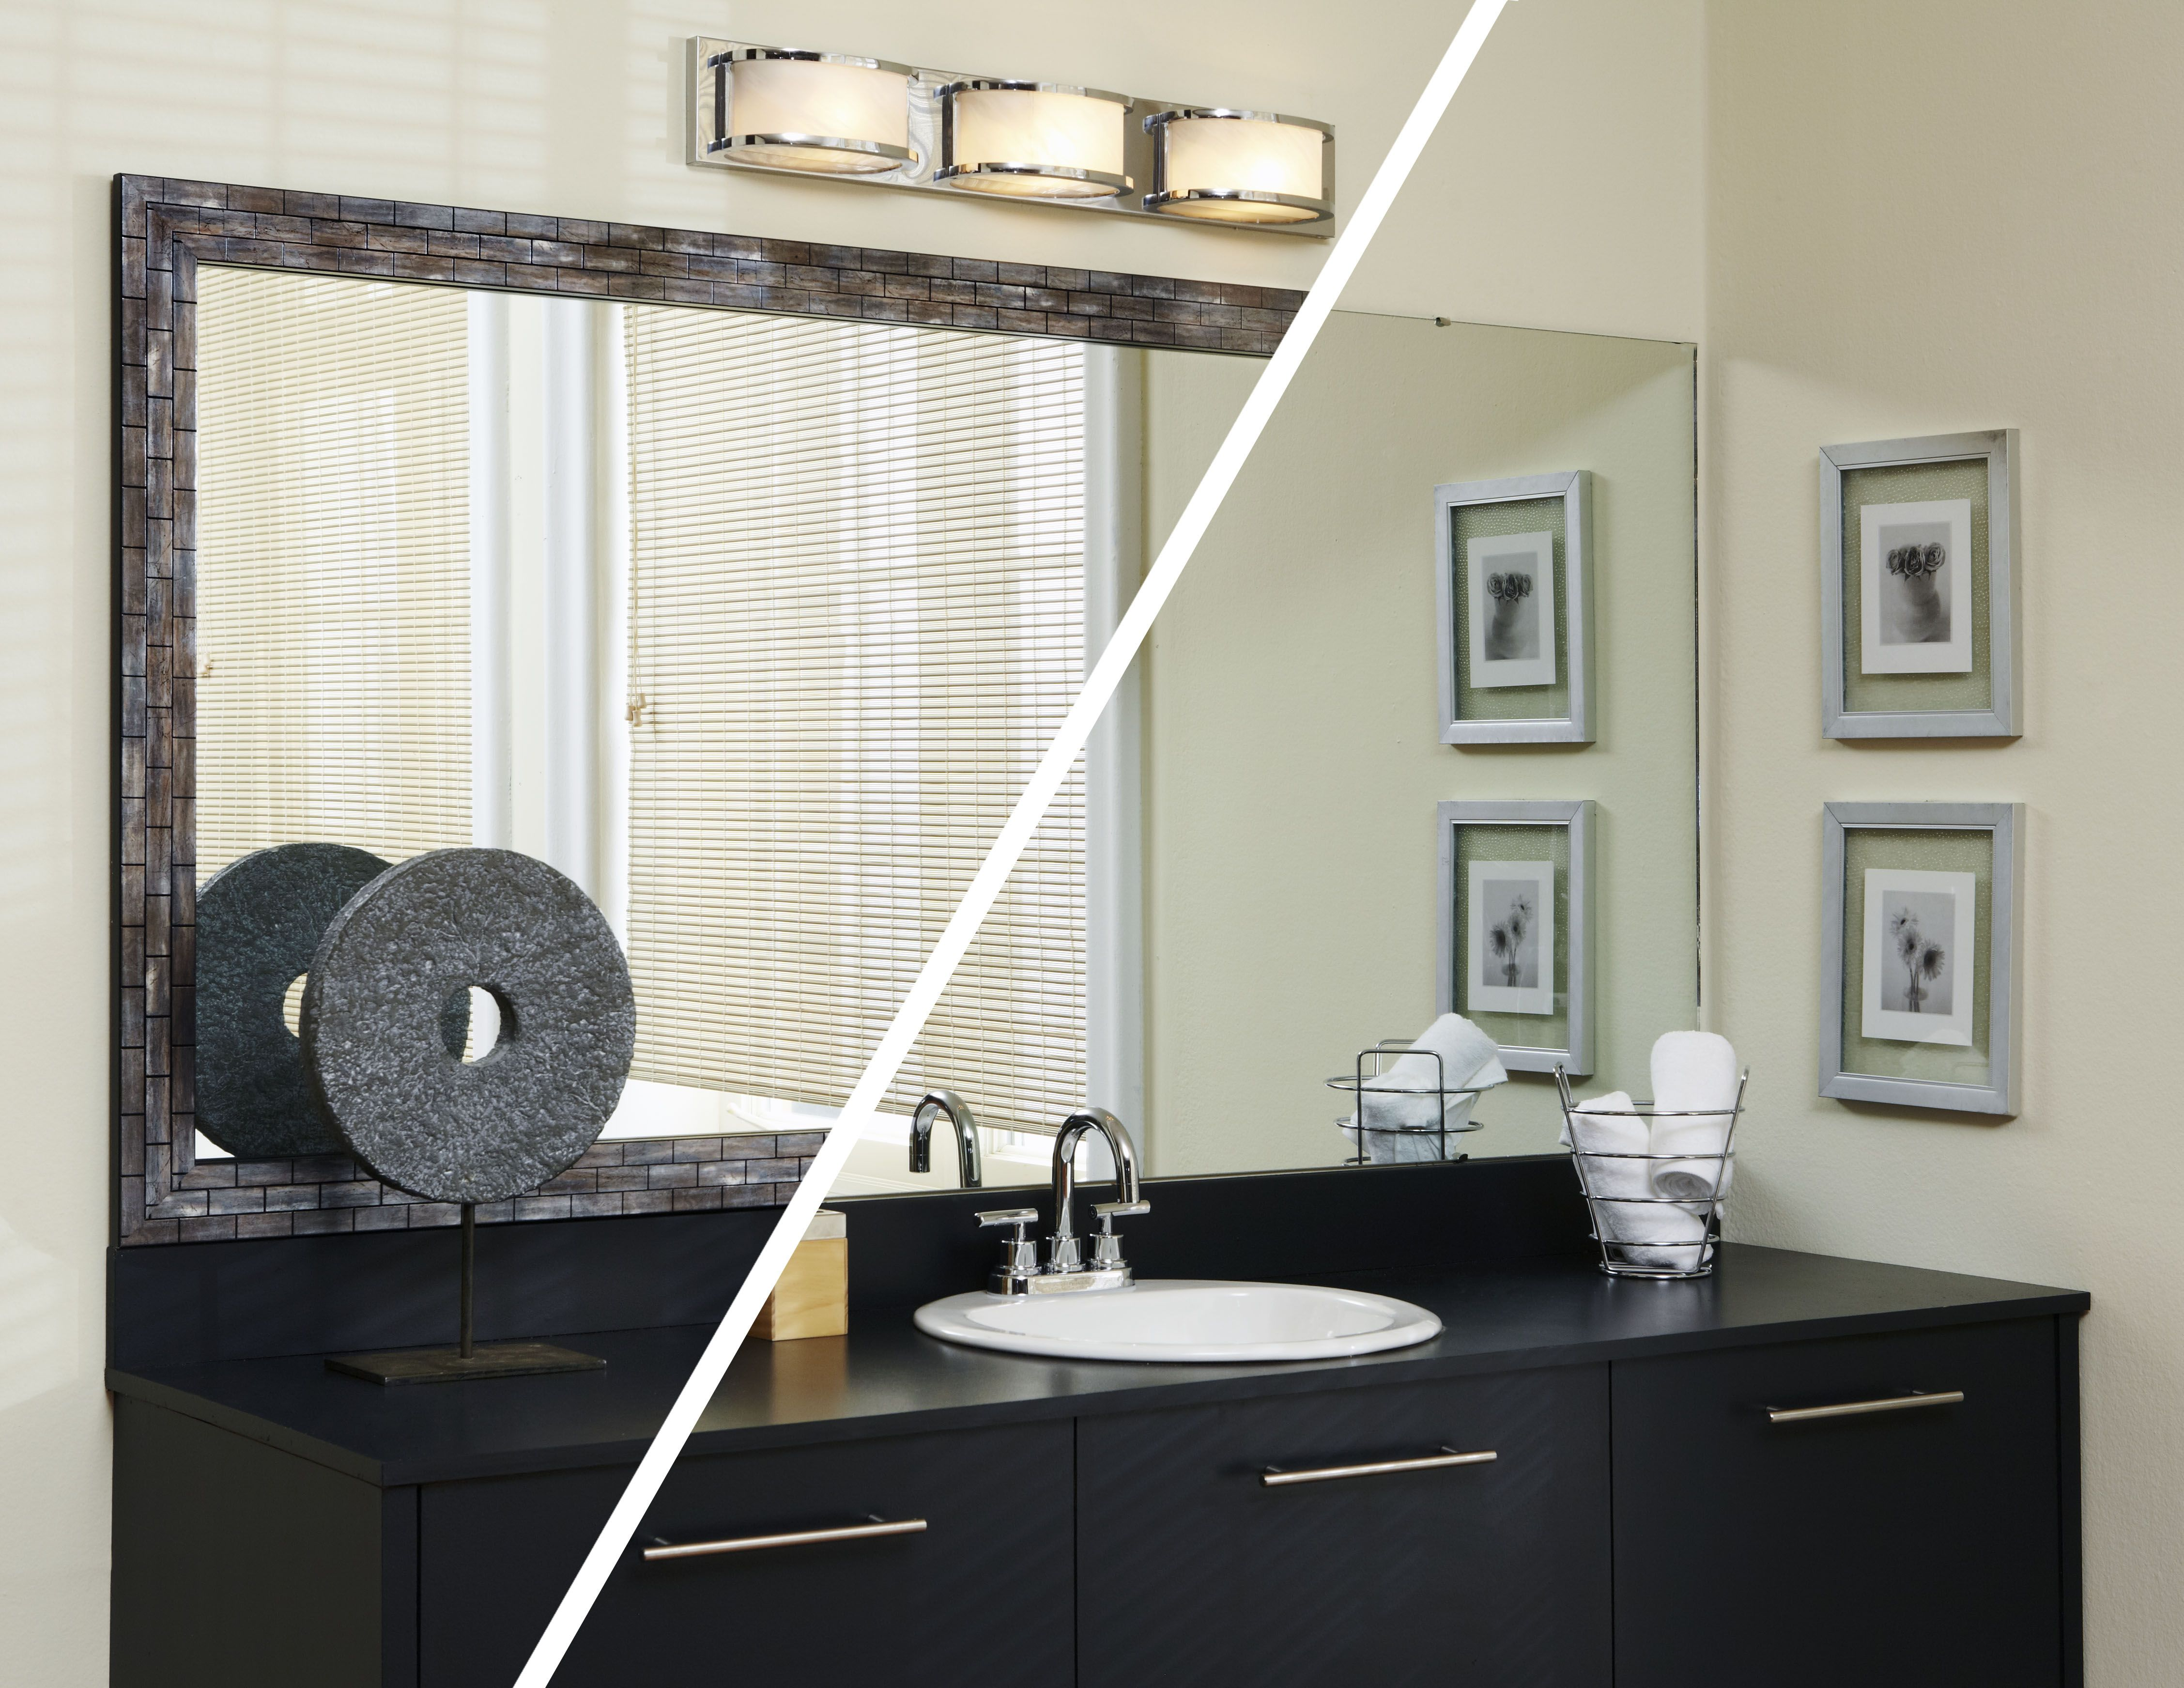 A MirrorMate frame in the Lexington style gives a finished look to ...